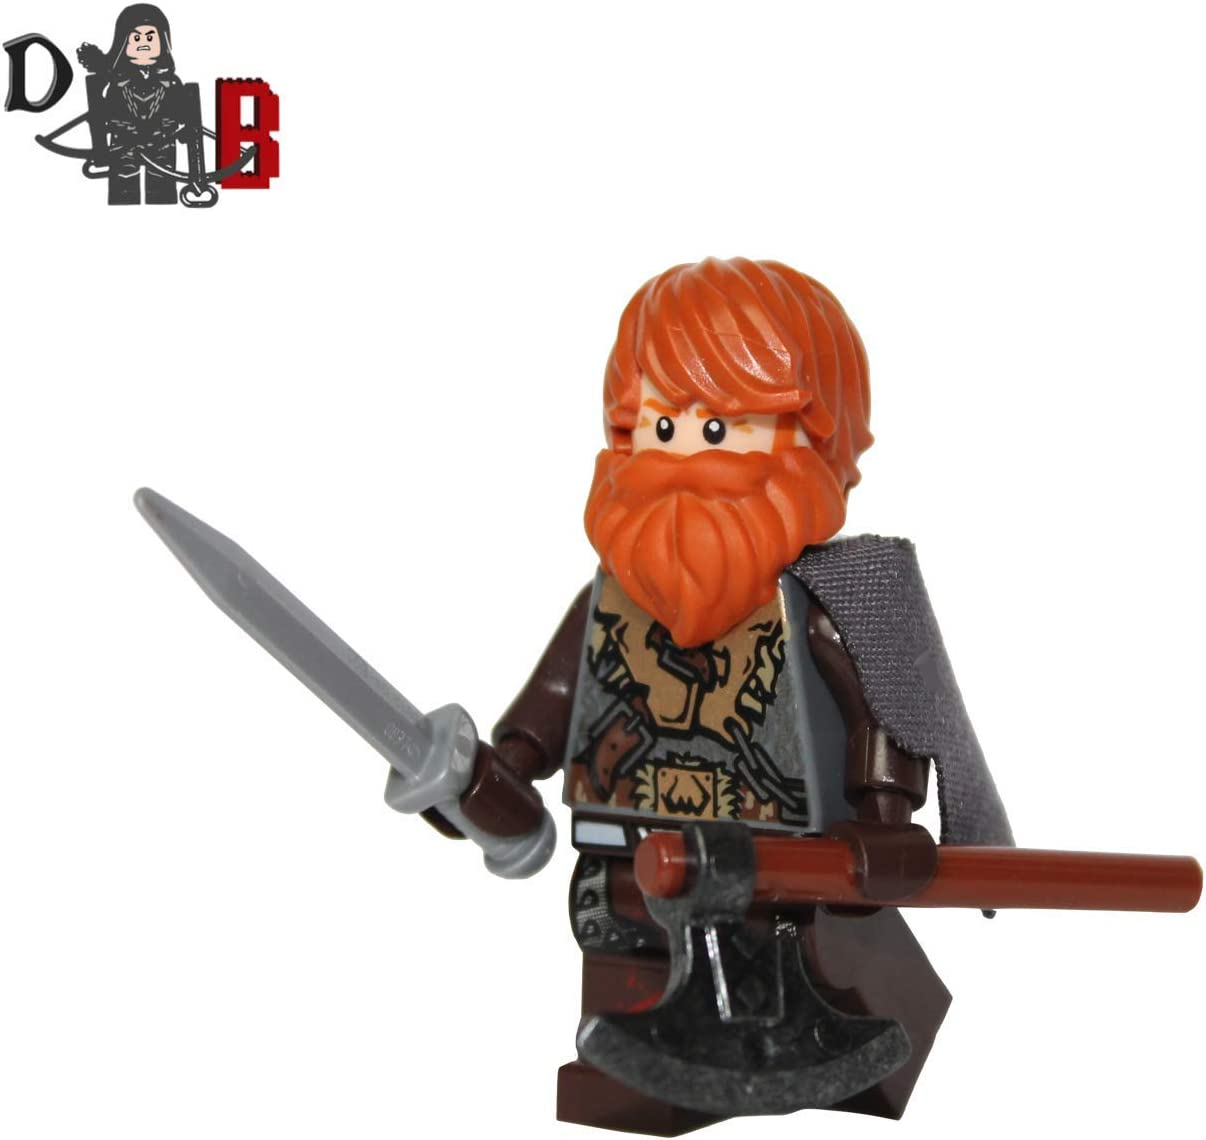 Demonhunter Bricks Custom Game of Thrones Tormund Giantsbane Minifigure Made Using Lego & Custom Parts